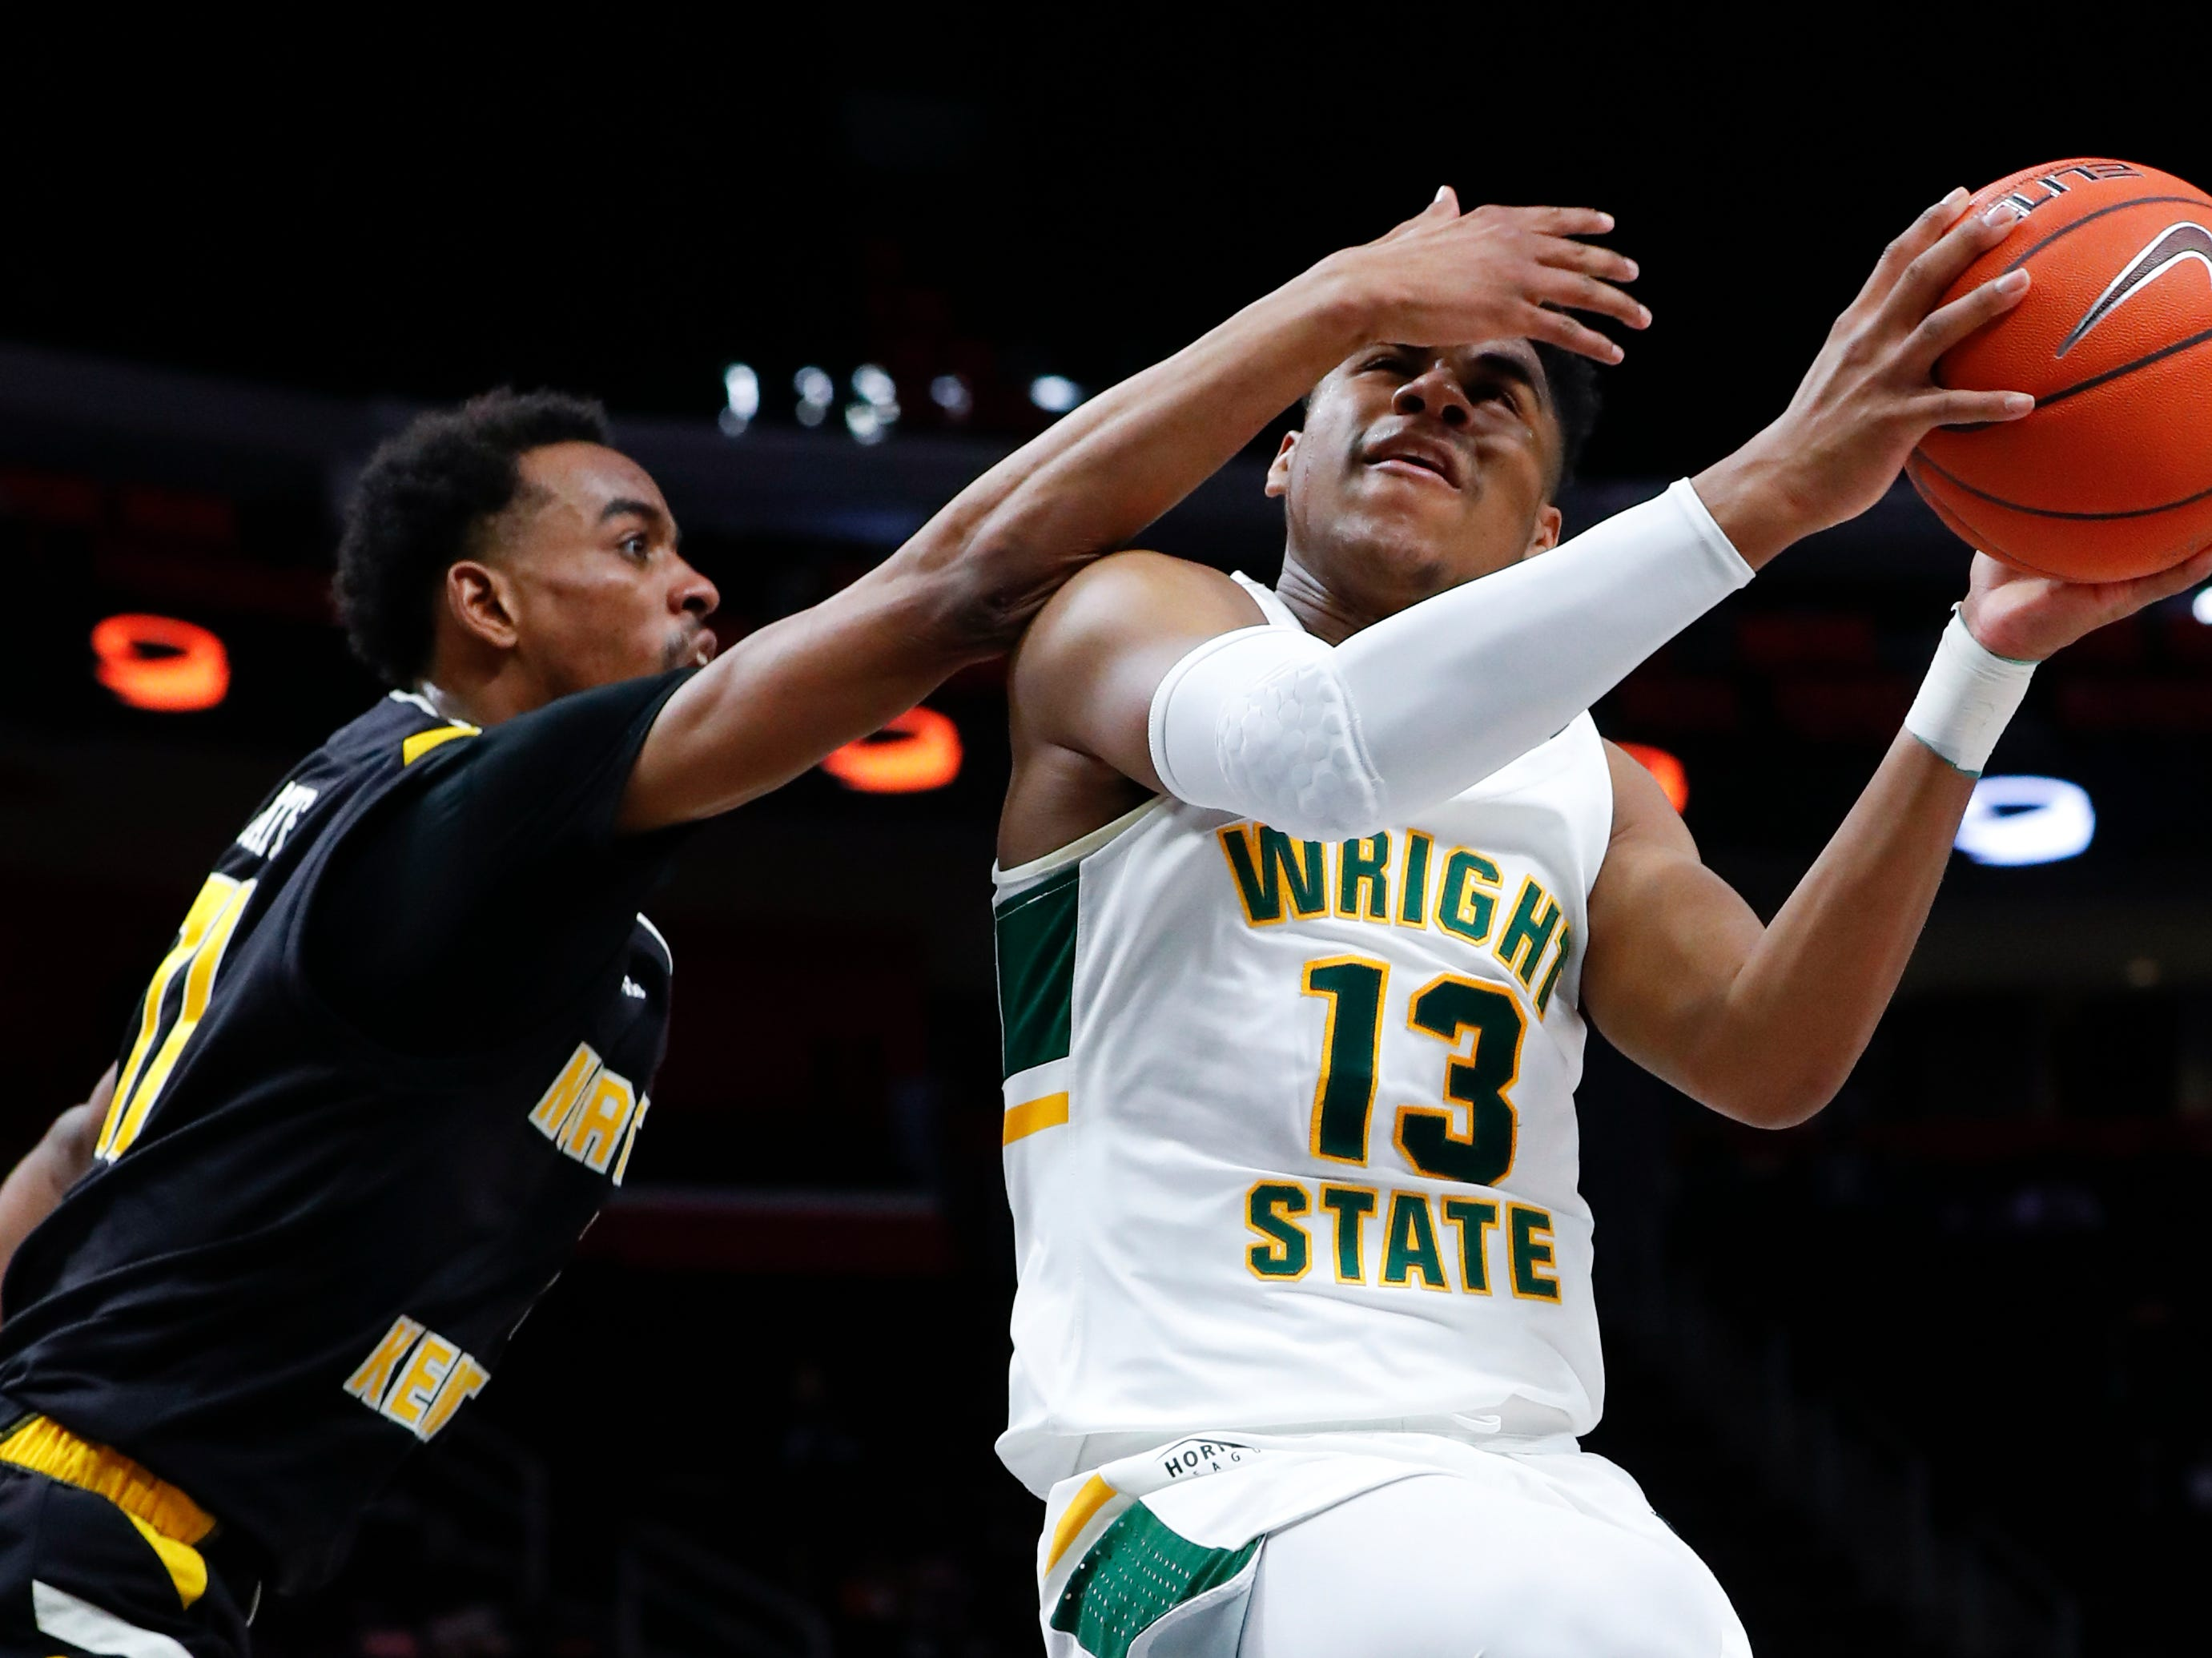 Wright State guard Malachi Smith (13) drives on Northern Kentucky guard Jalen Tate (11) during the first half of an NCAA college basketball game for the Horizon League men's tournament championship in Detroit, Tuesday, March 12, 2019.